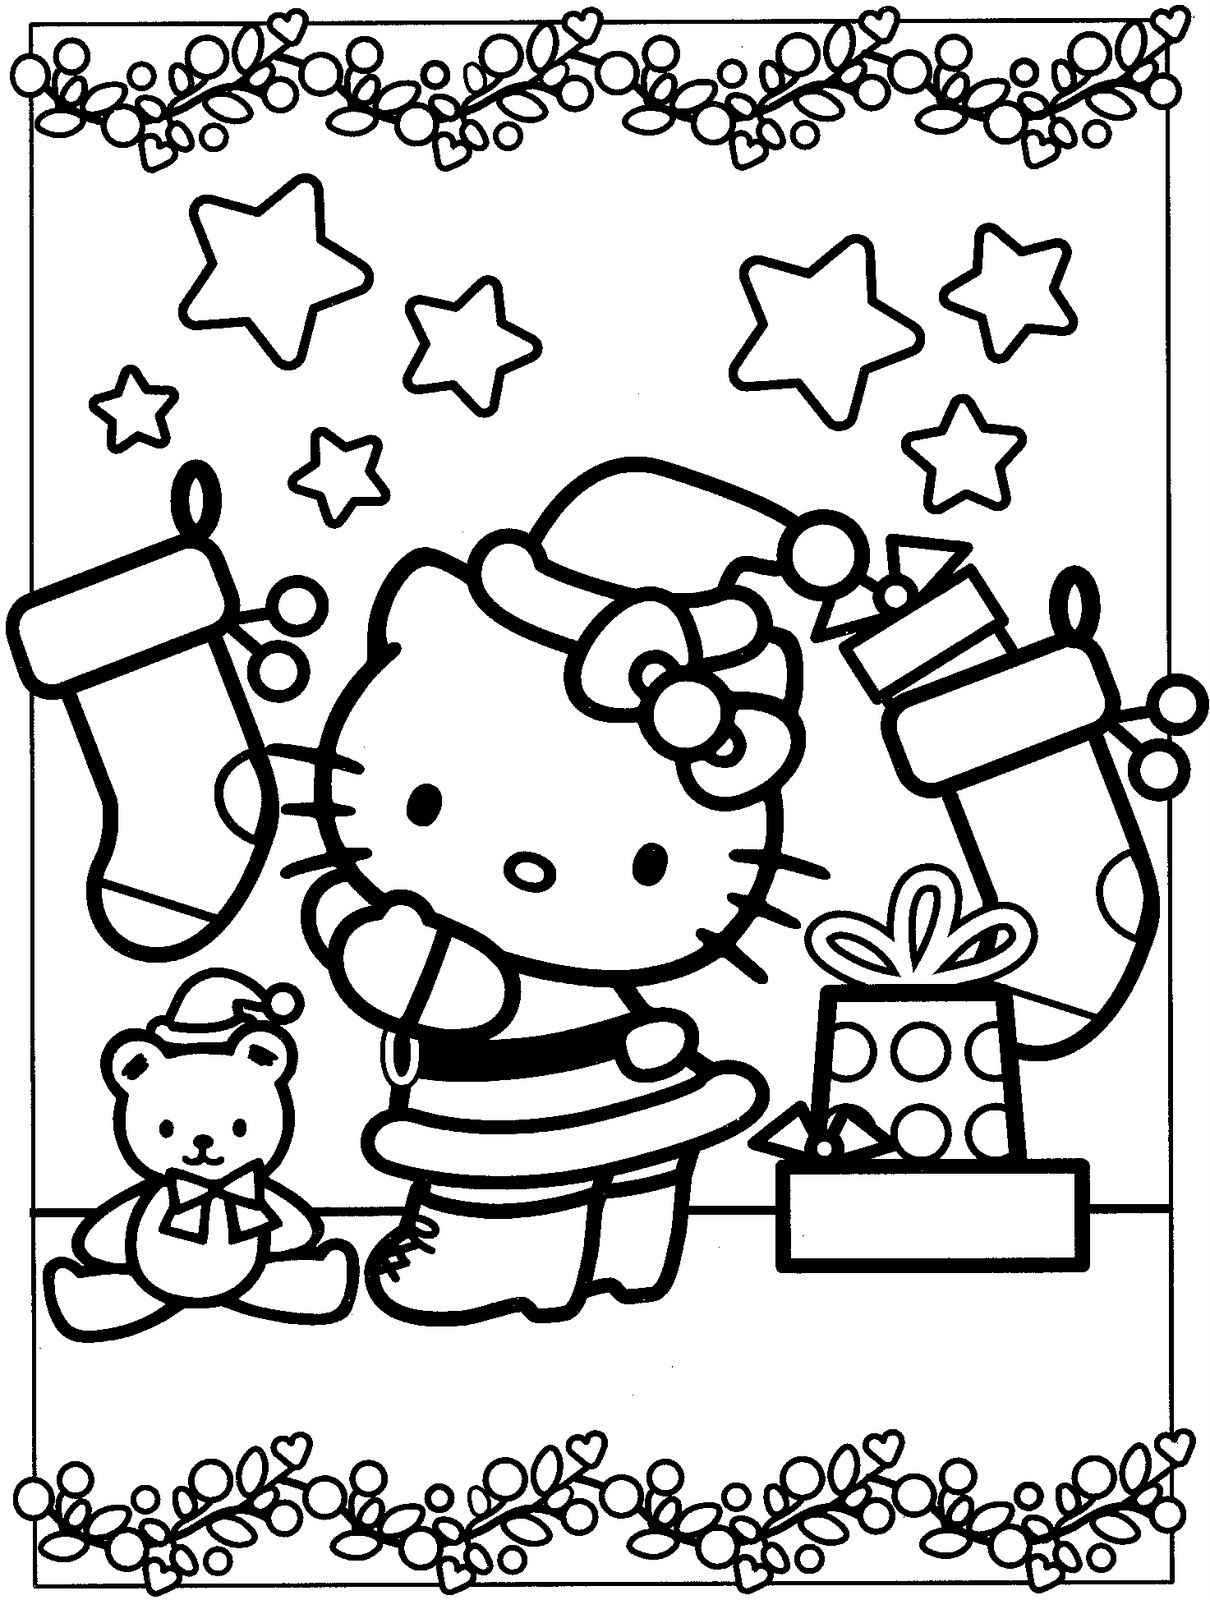 Chrismast hello kitty coloring pages http smilecoloring com hello kitty colouring